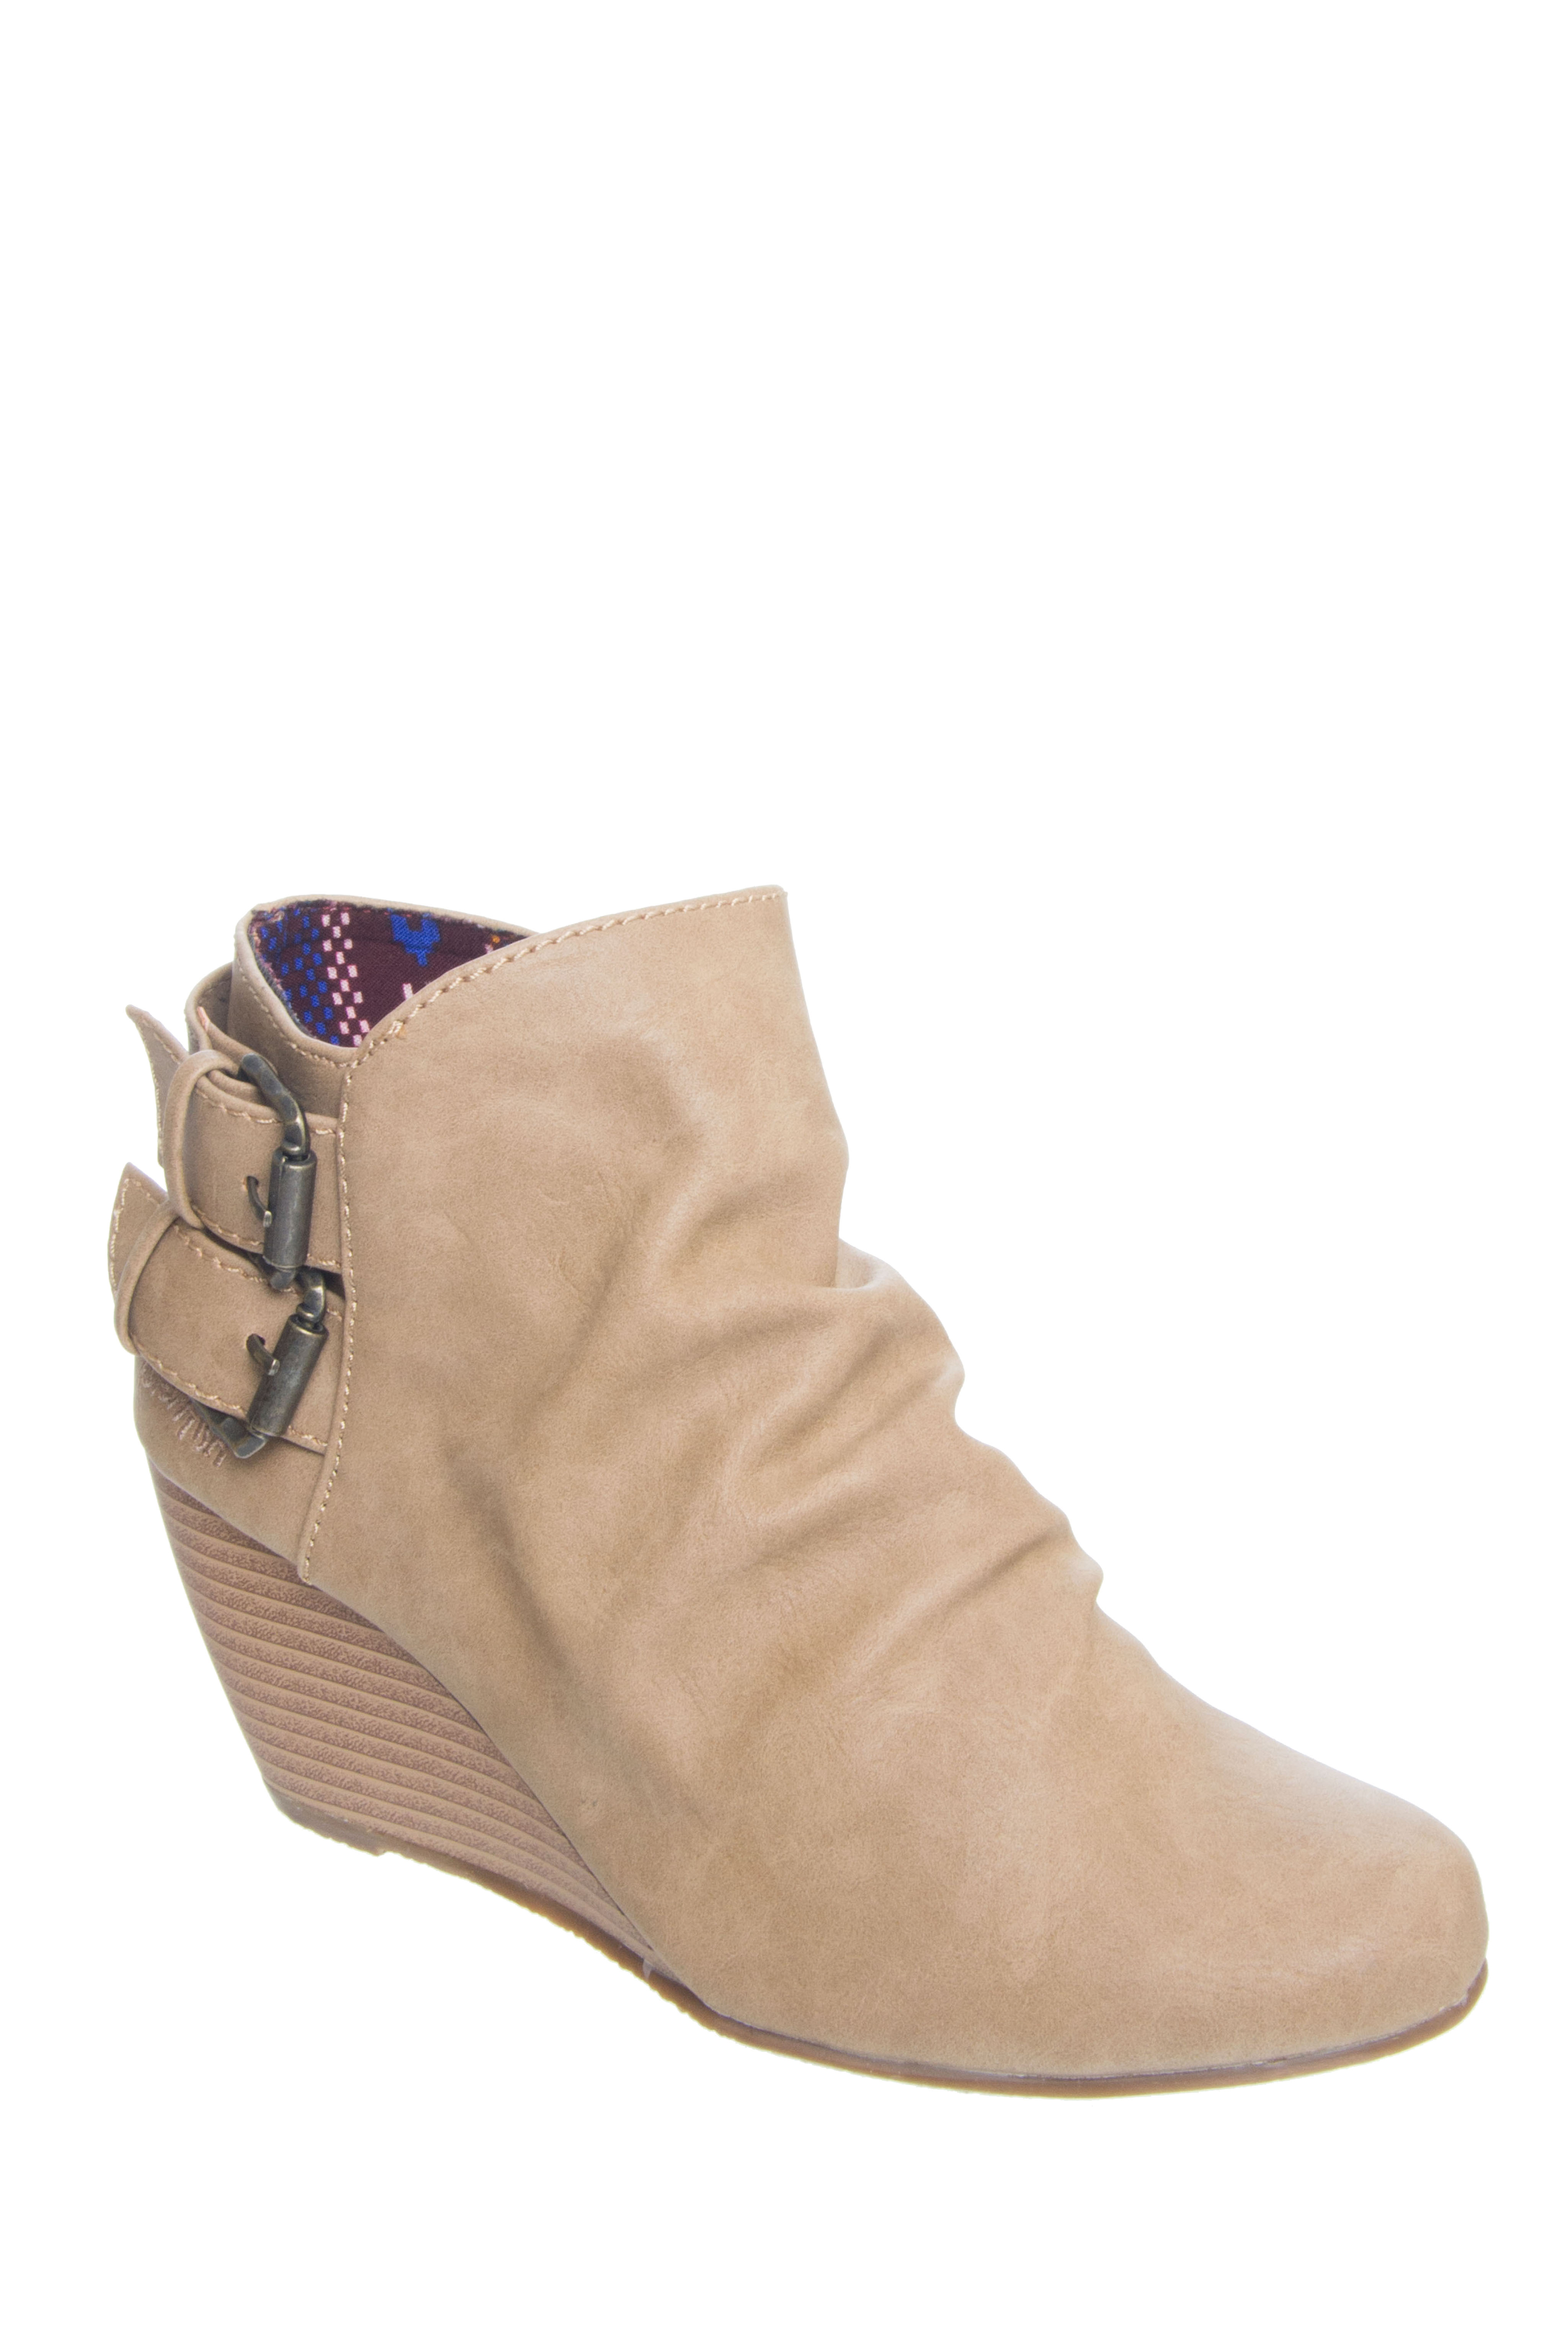 Blowfish Bug Mid Heel Booties - Sand